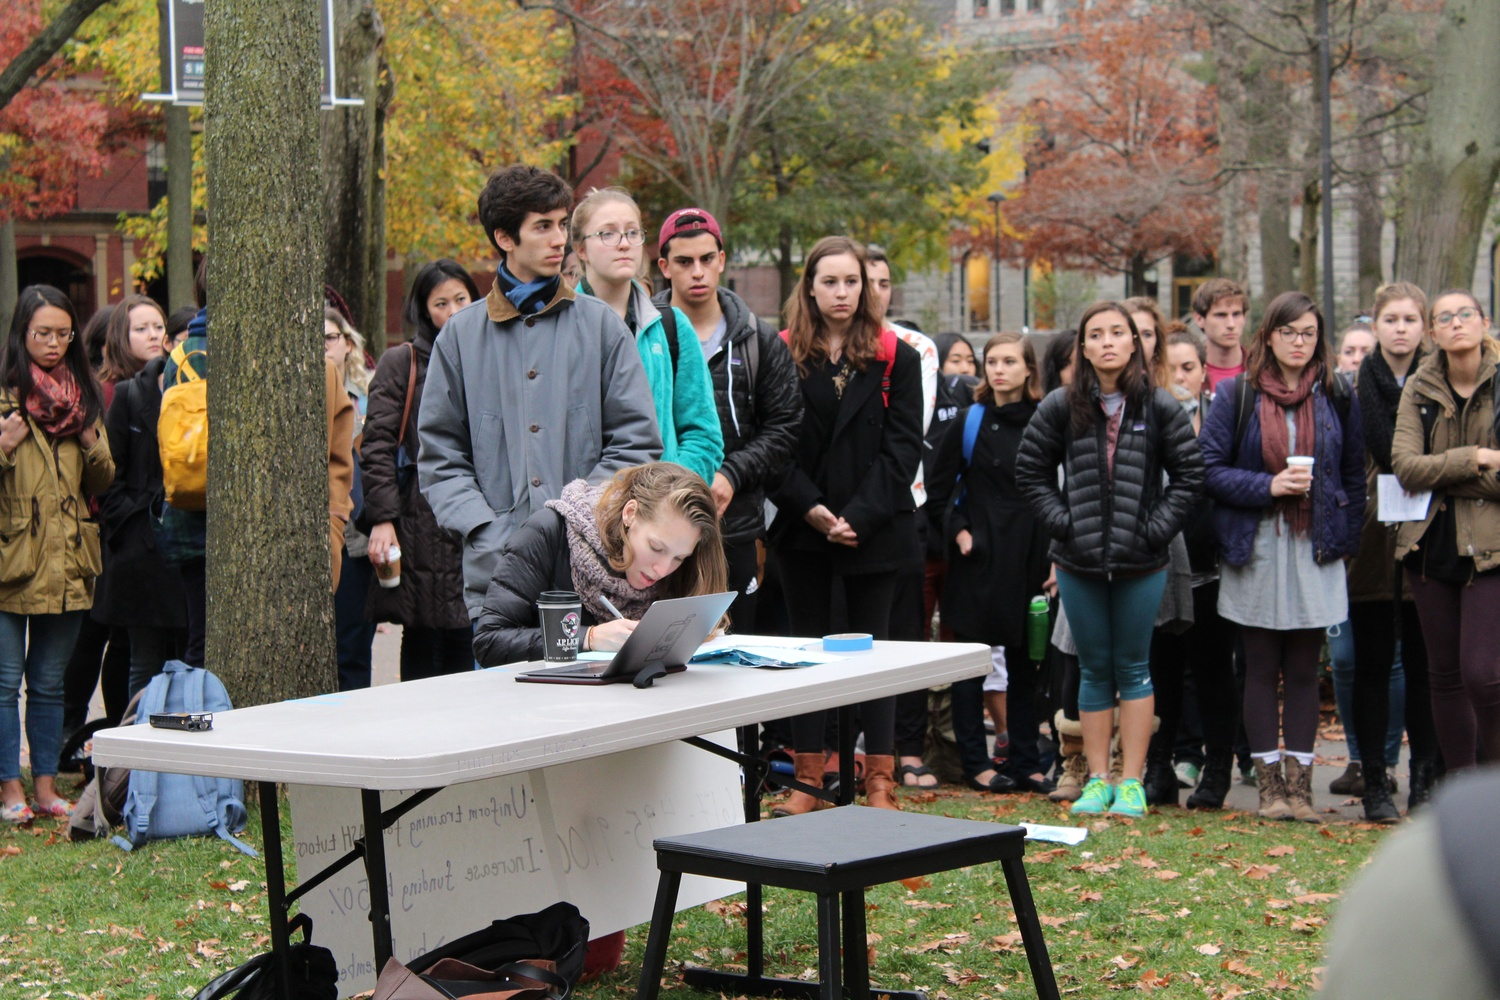 Students line up to sign a petition in support of demands to overhaul Harvard's sexual assault prevention programs at a rally outside Massachusetts Hall in November 2015. Students said Harvard should require mandatory yearly sexual assault training for undergraduates and additional training for sexual violence response tutors in addition to increasing funding for the Office of Sexual Assault Prevention and Response.